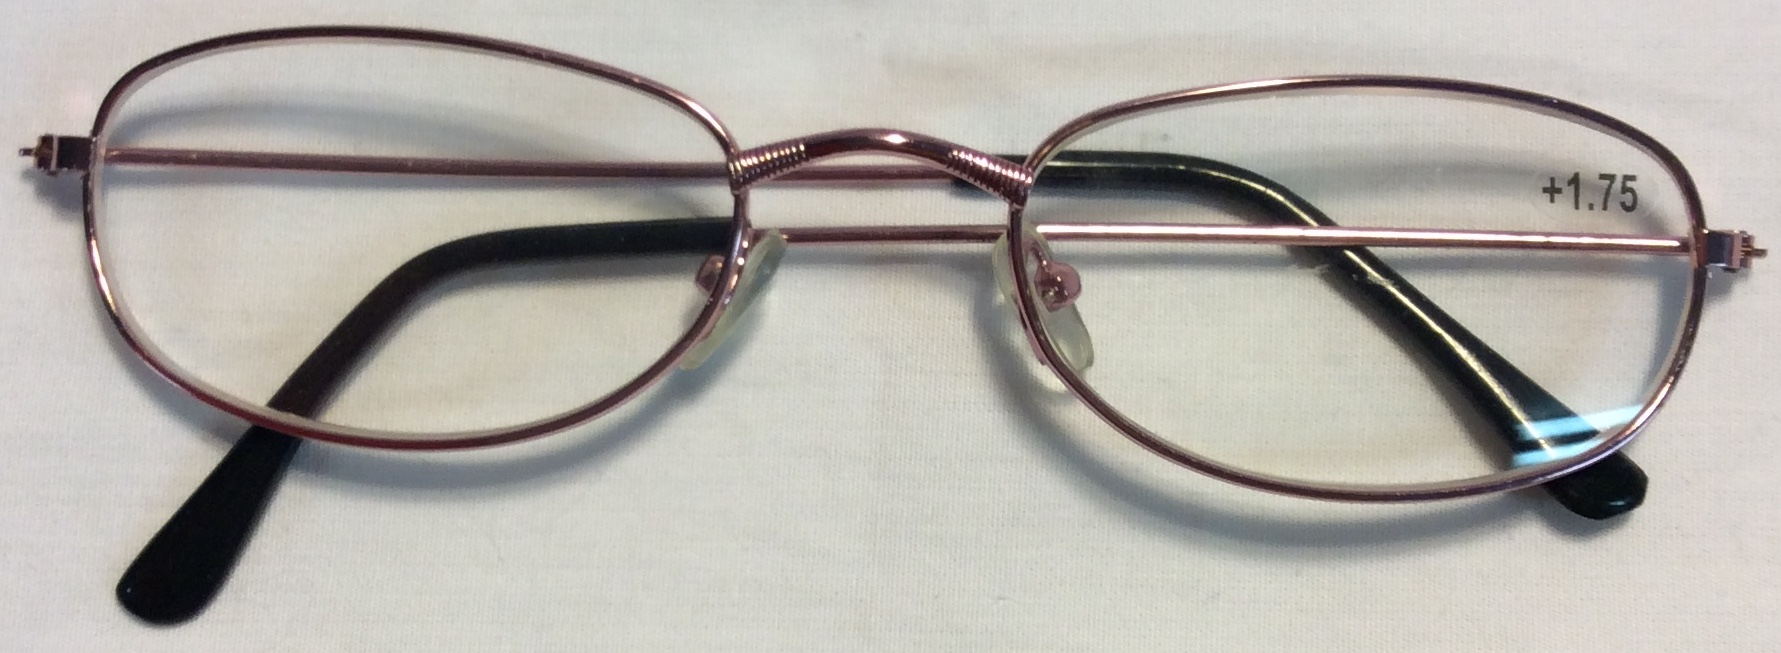 Thin pink metal frames, black